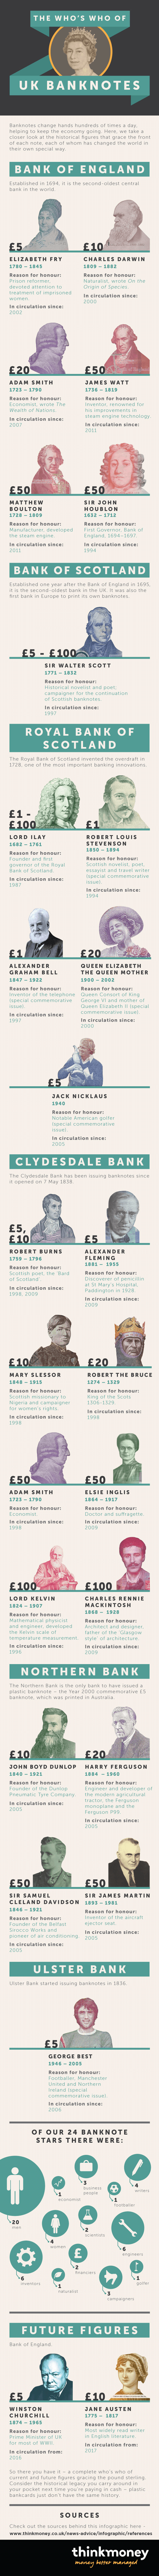 The Who's Who of UK Banknotes]